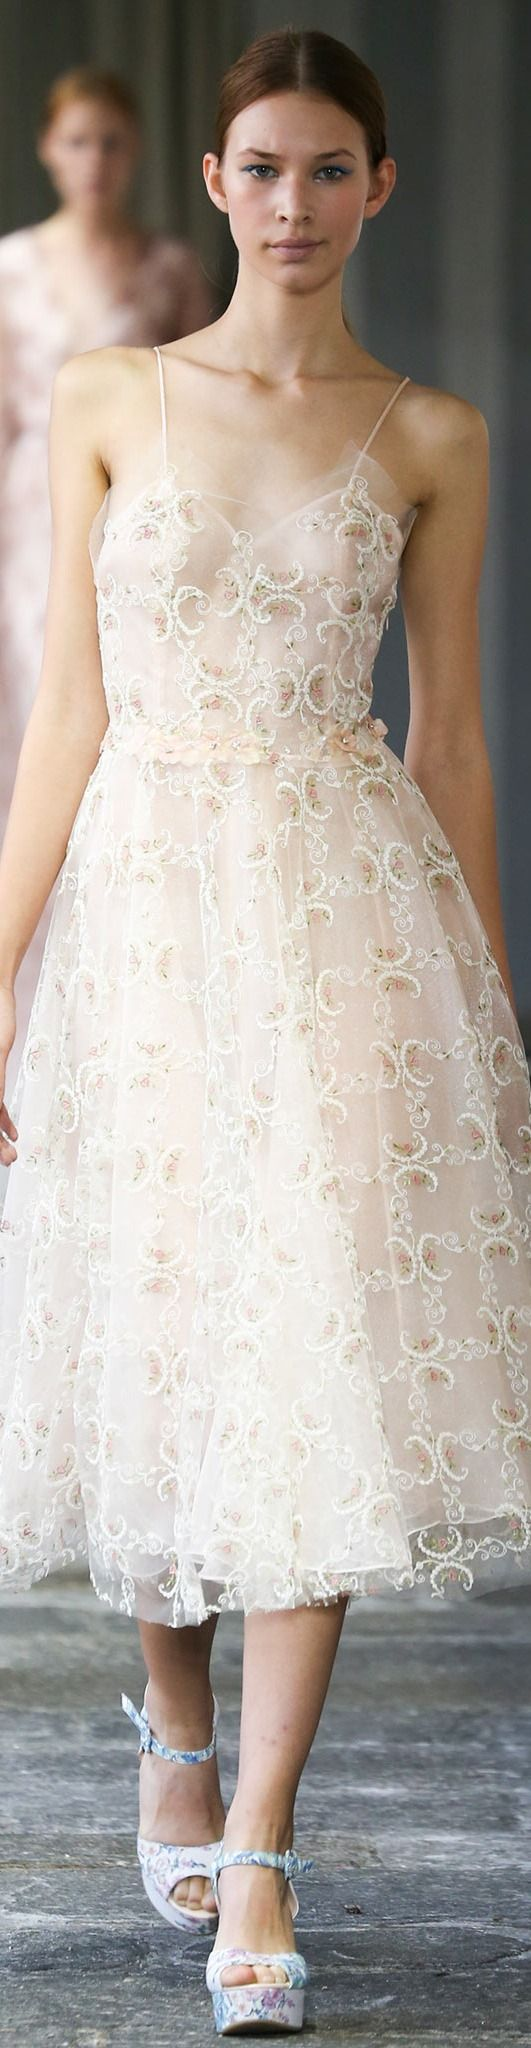 Trend: Lacy, Beadwork, Feminine Luisa Beccaria Collection Spring 2015